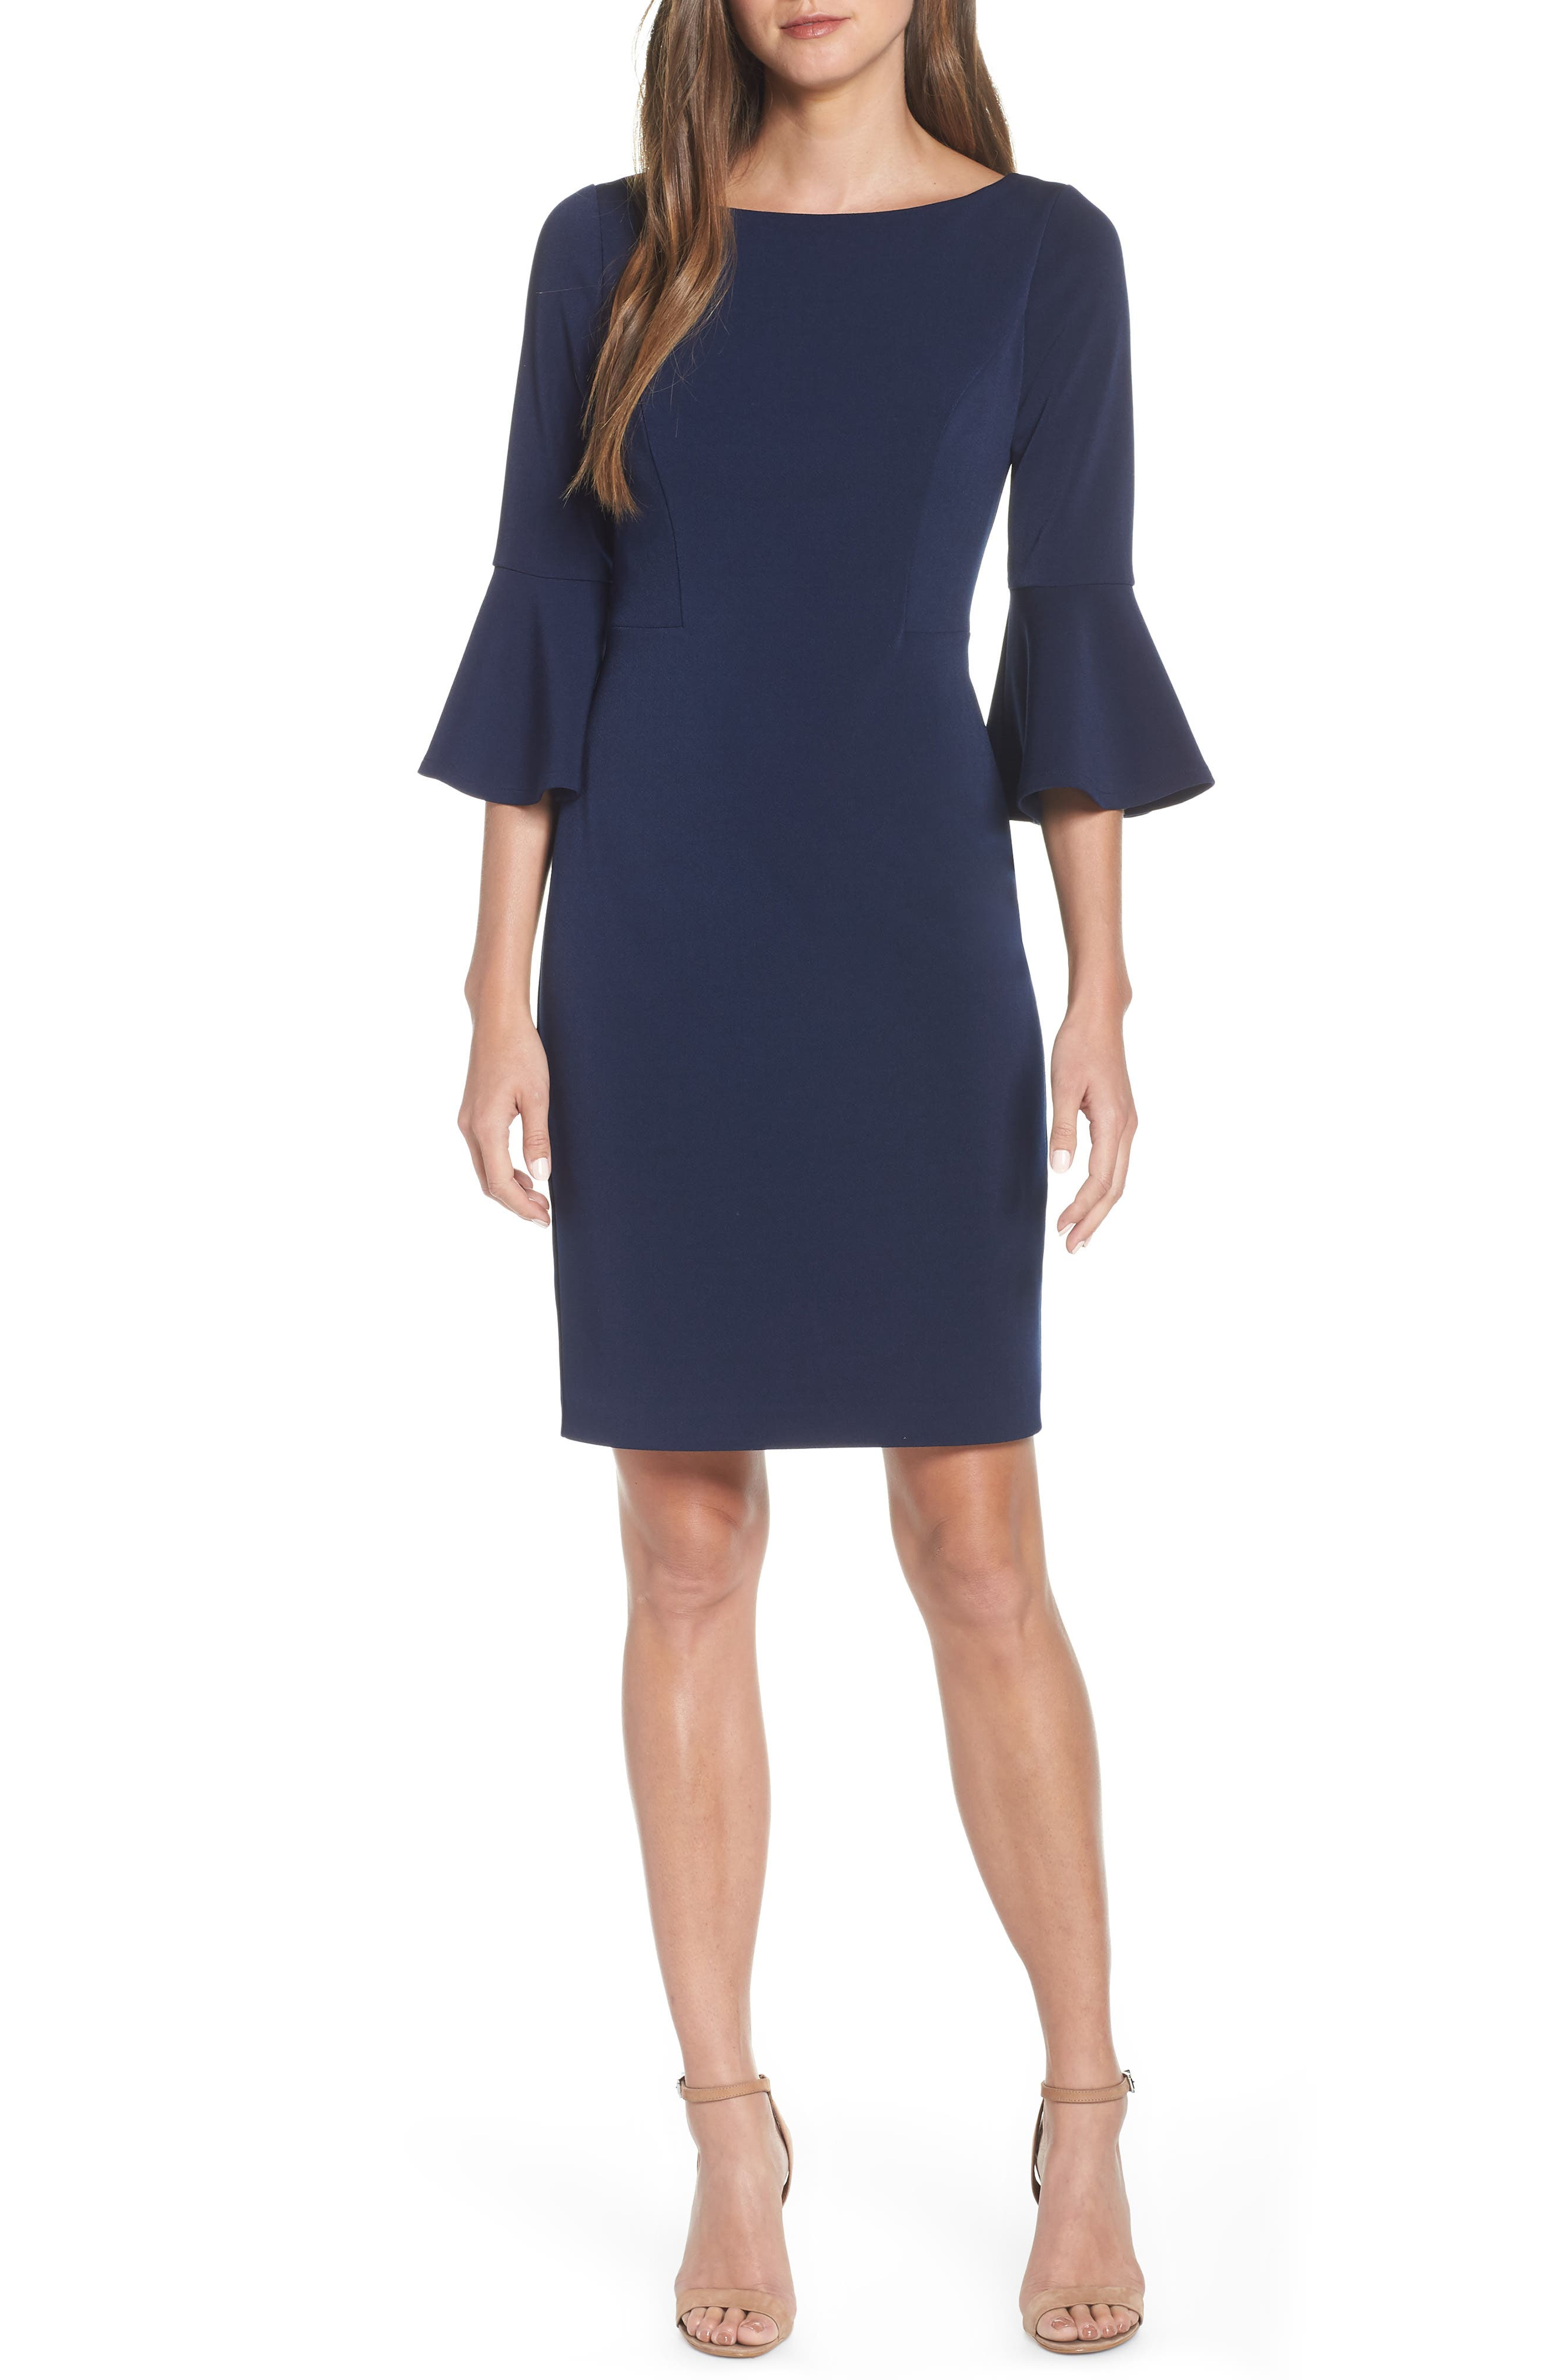 HARPER ROSE,                             Bell Sleeve Bateau Neck Sheath Dress,                             Main thumbnail 1, color,                             NAVY